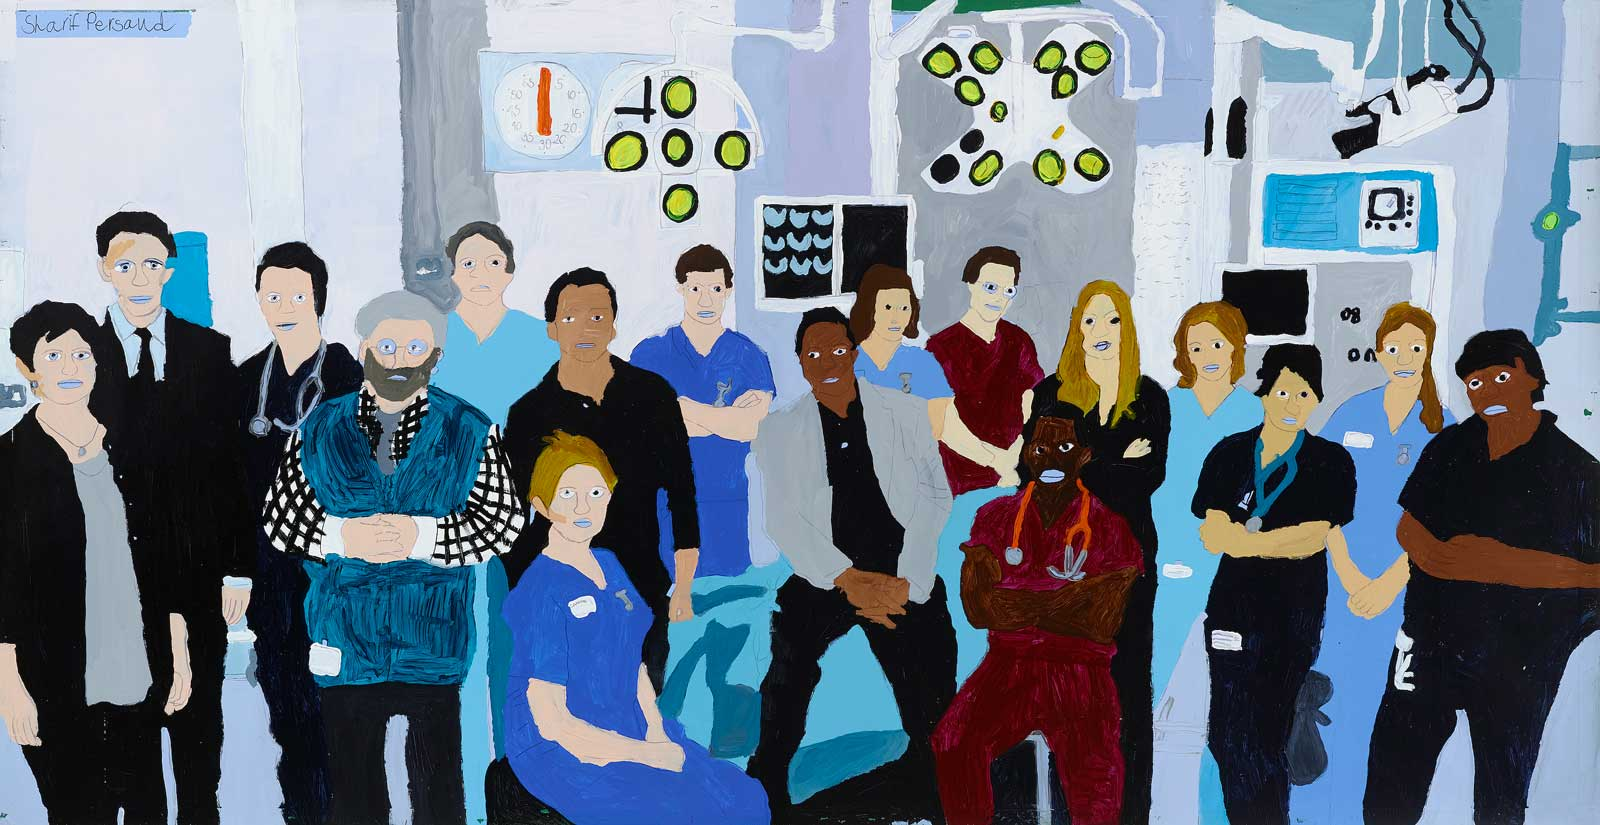 Holby City, Sharif Persaud, 2014